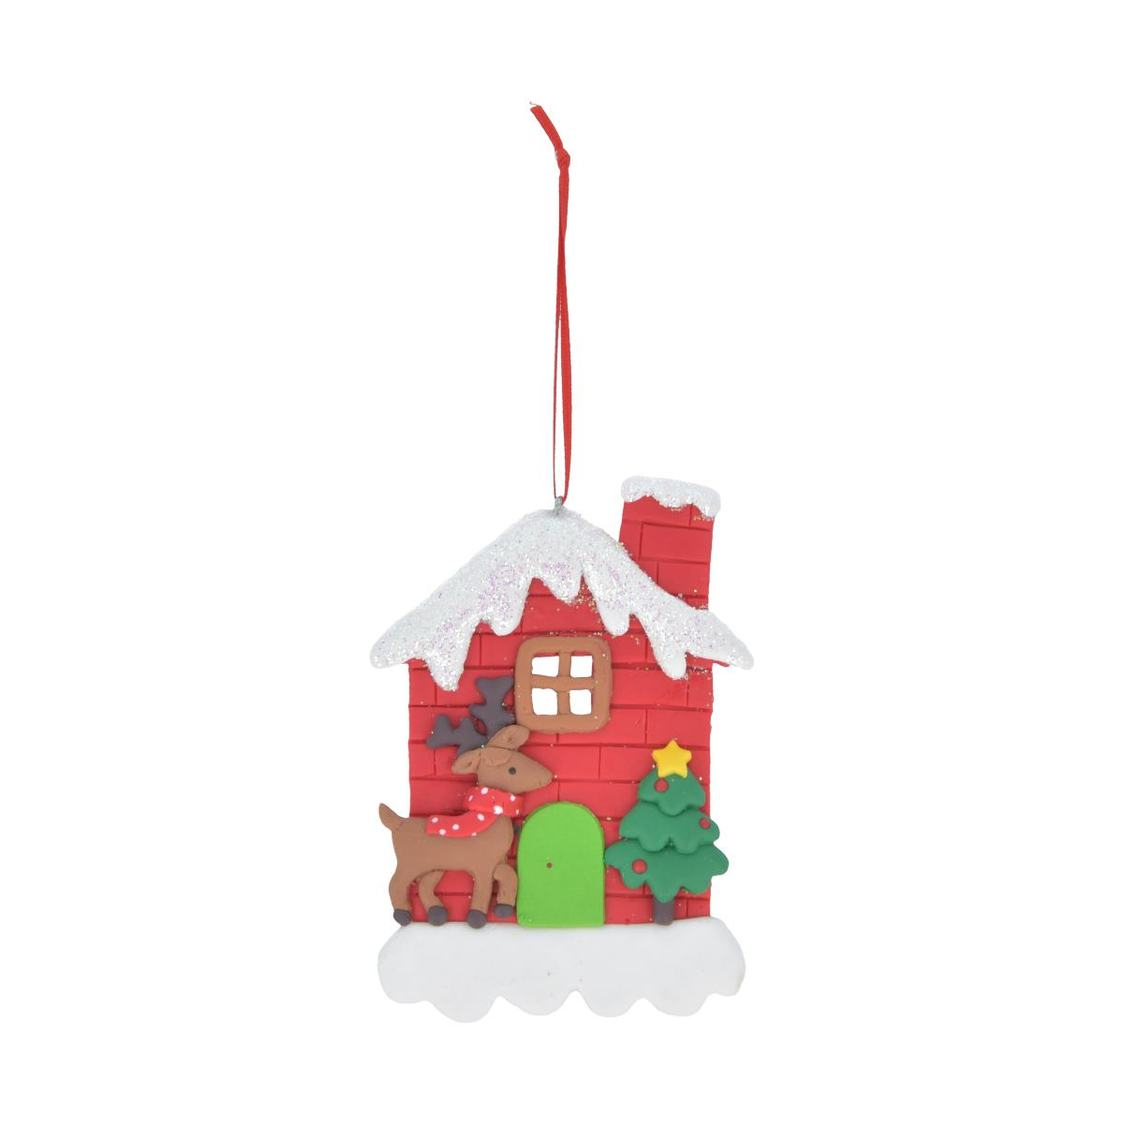 Bread Dough House Ornament Red